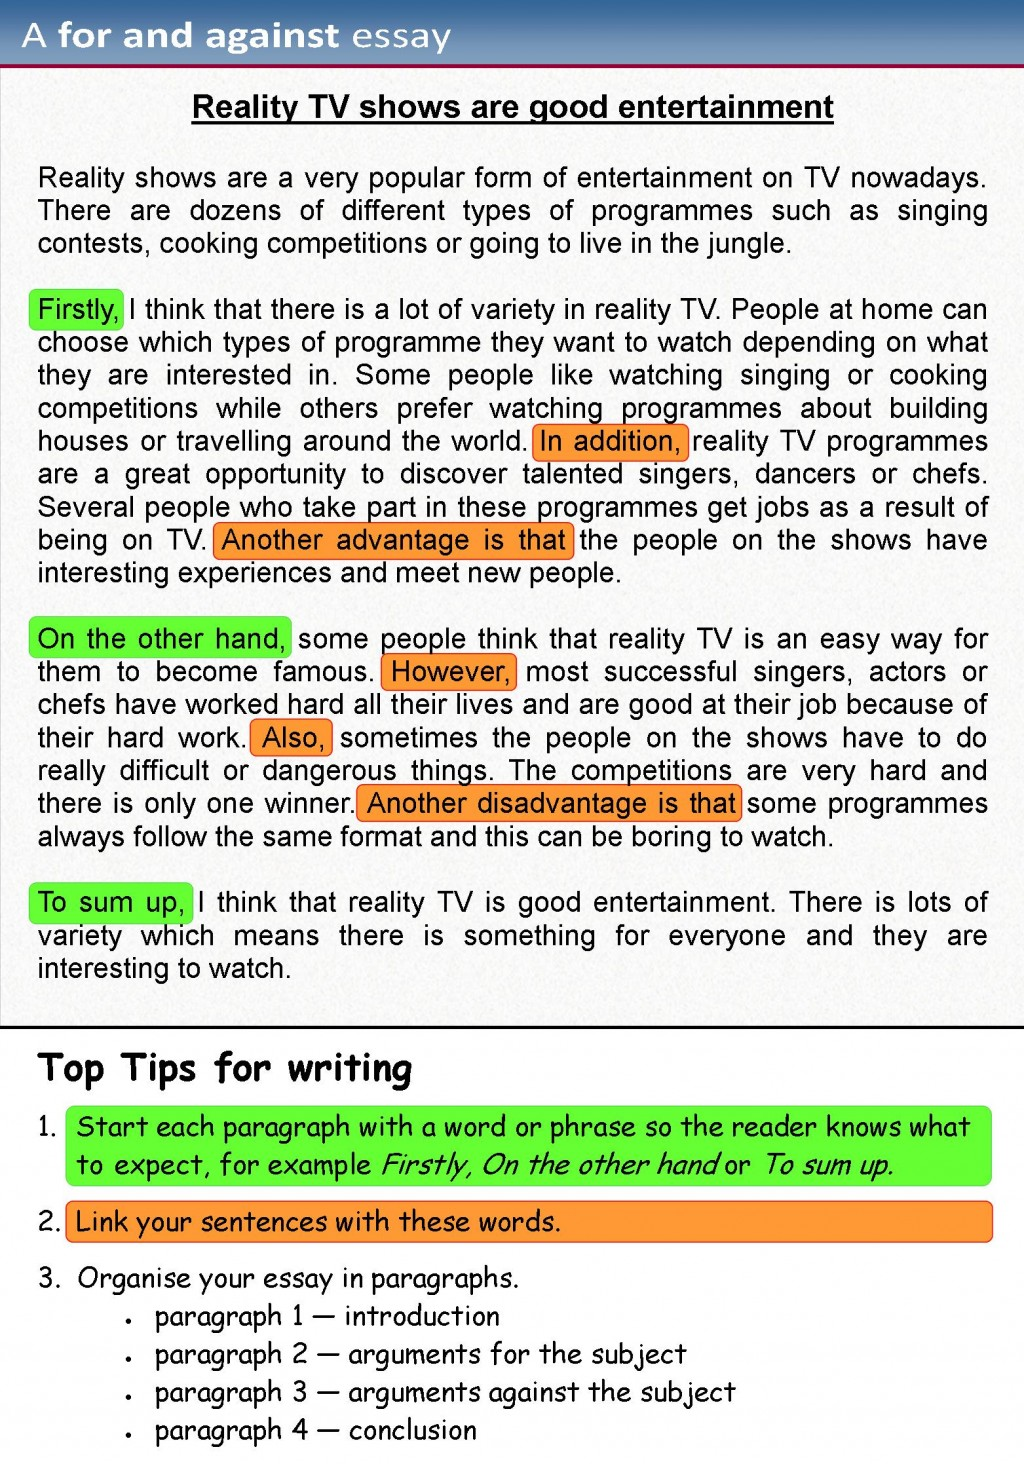 027 How Many Sentences Are In Essay For Against 1 Best A Much Make Paragraph An 250 Word Large